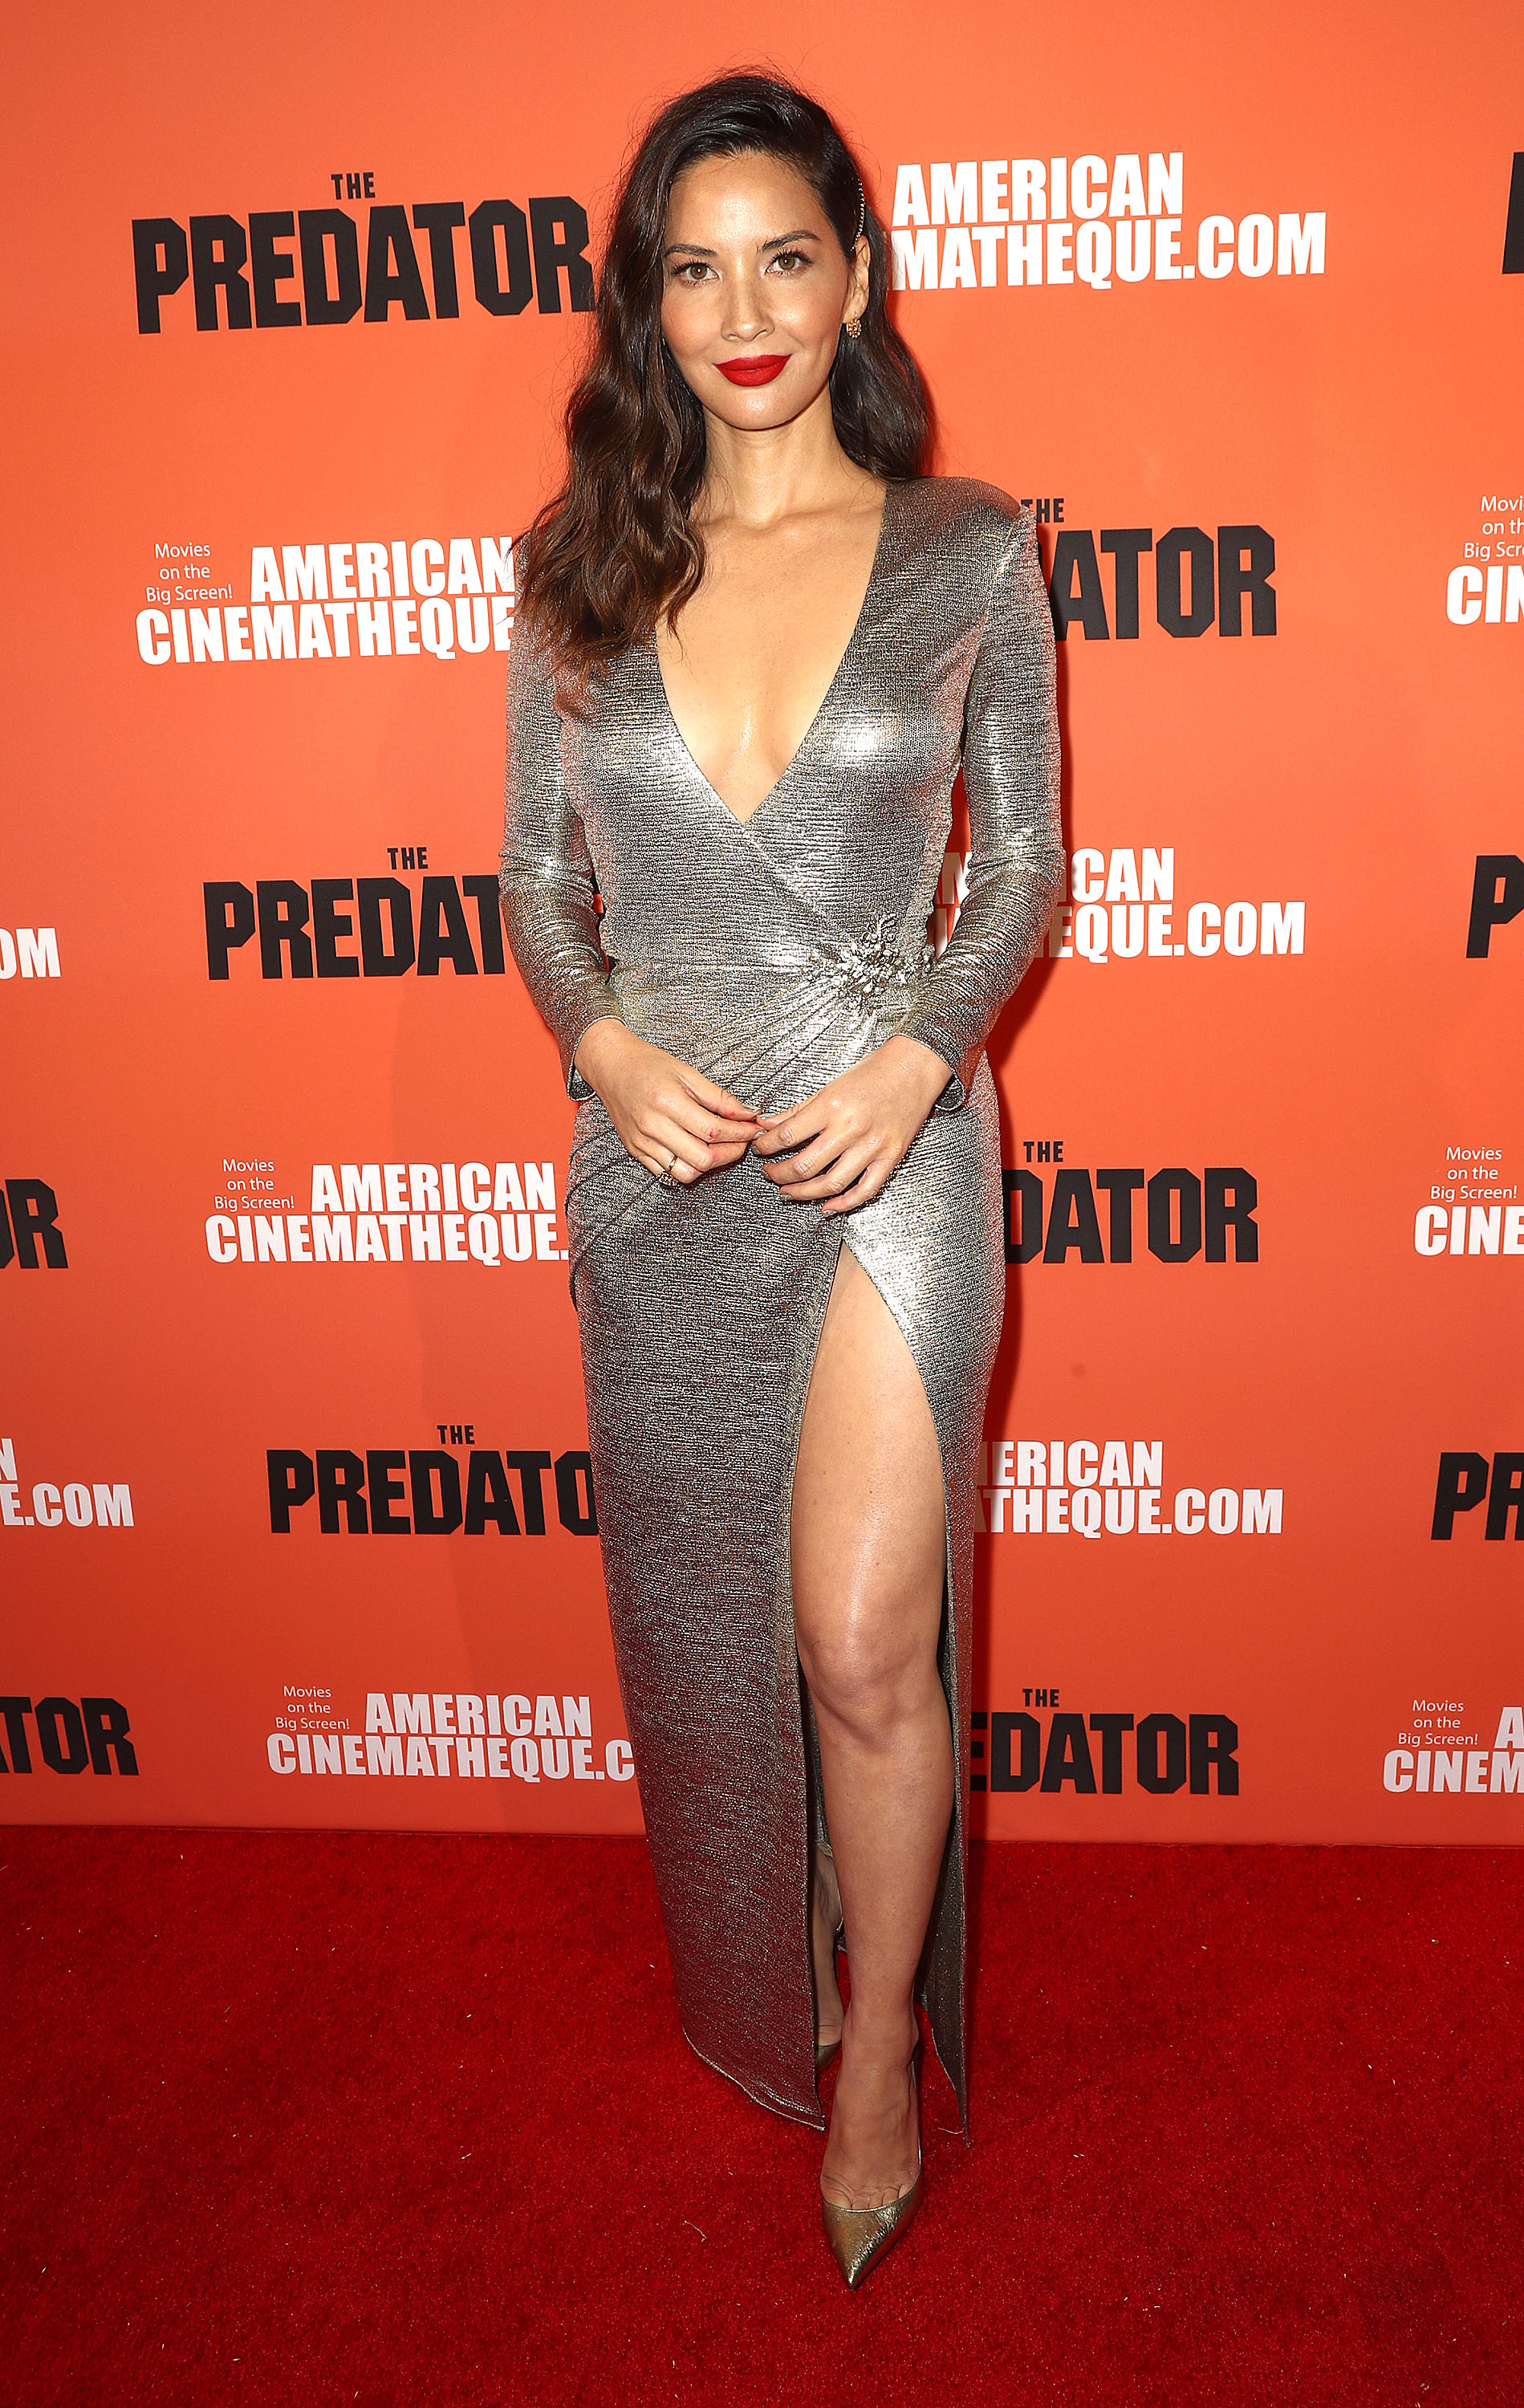 Actress Olivia Munn attends the Screening of 20th Century Fox's 'The Predator' September 12, 2018, in Hollywood, California. (Getty Images)